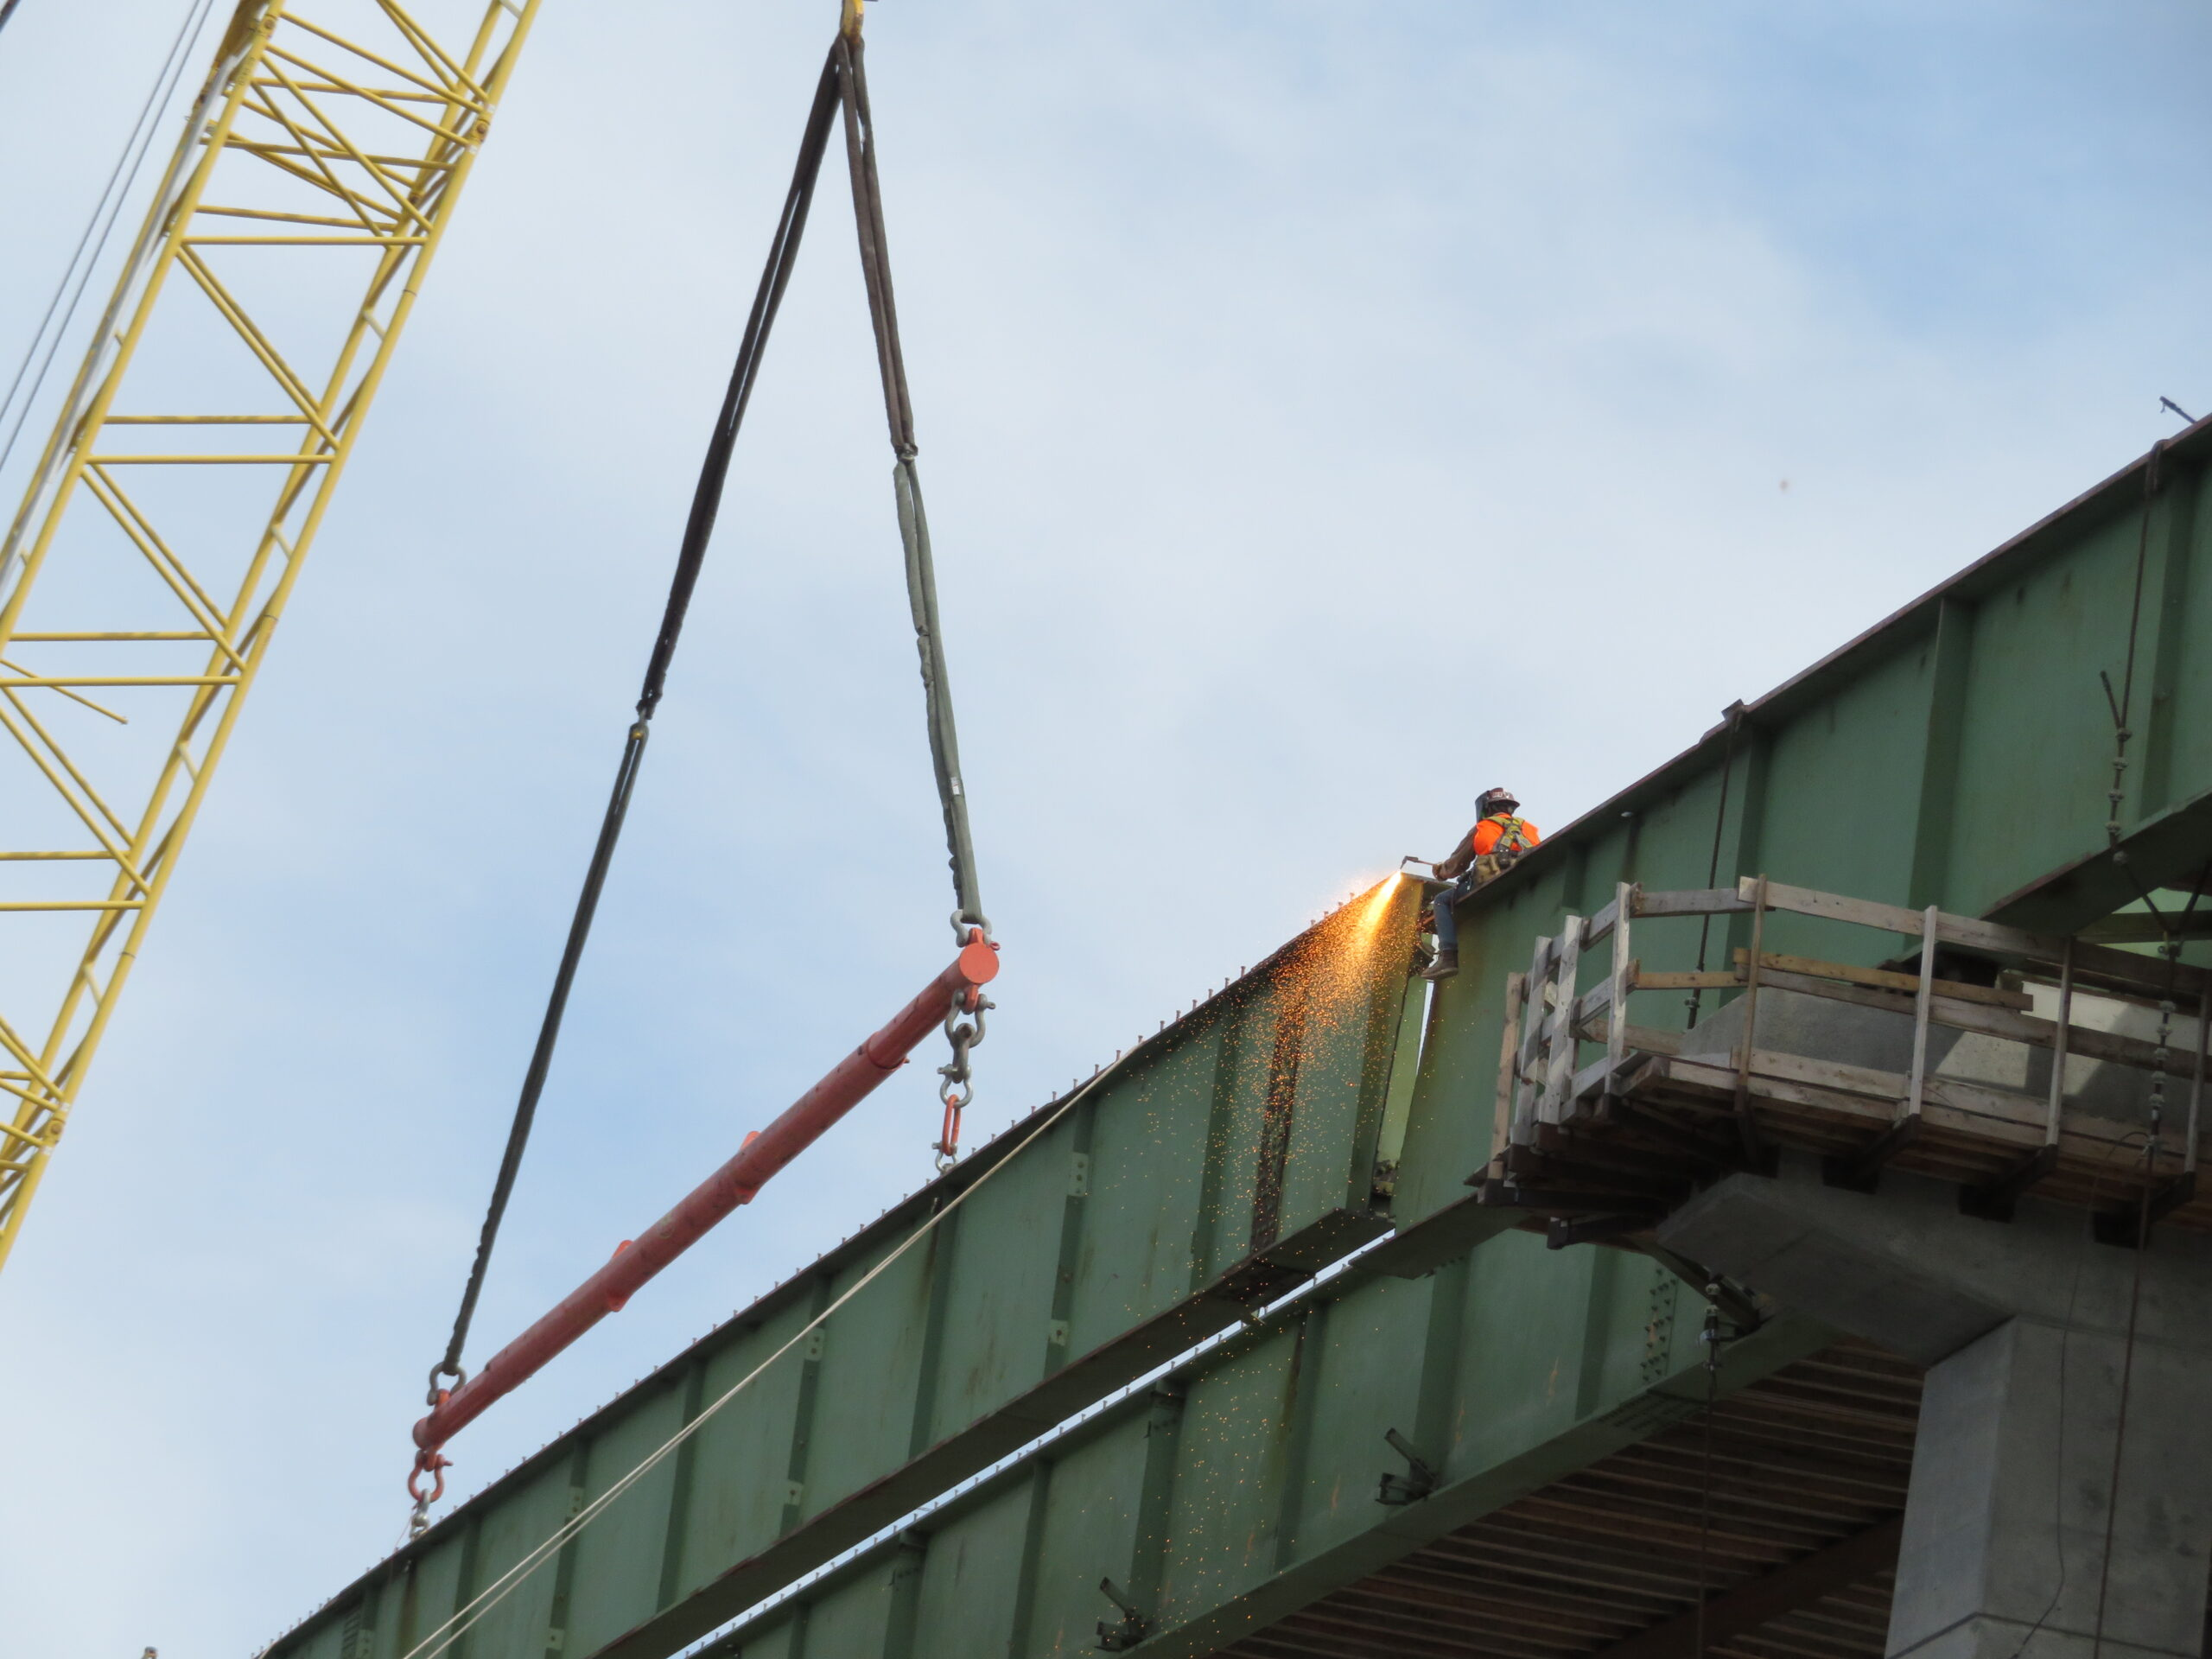 Final cuts, girder section ready to be lowered